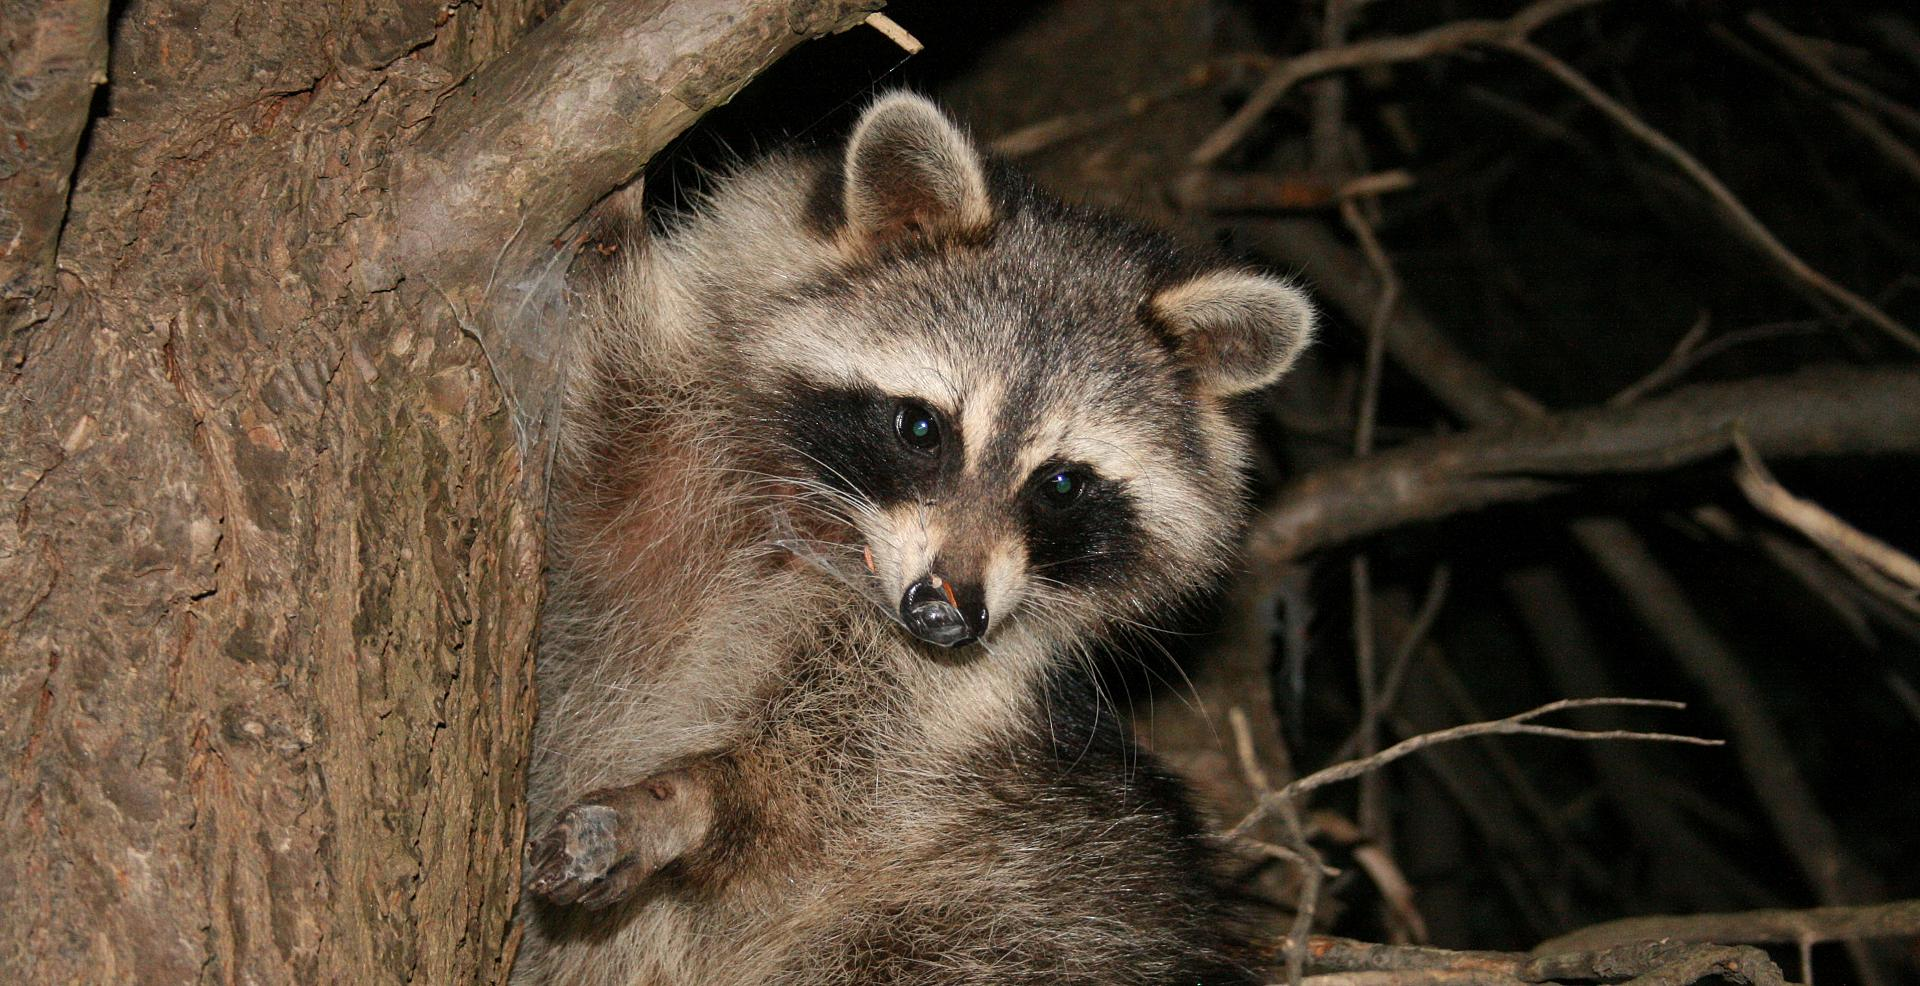 Hunting Ontario's overpopulated masked bandits • Outdoor Canada